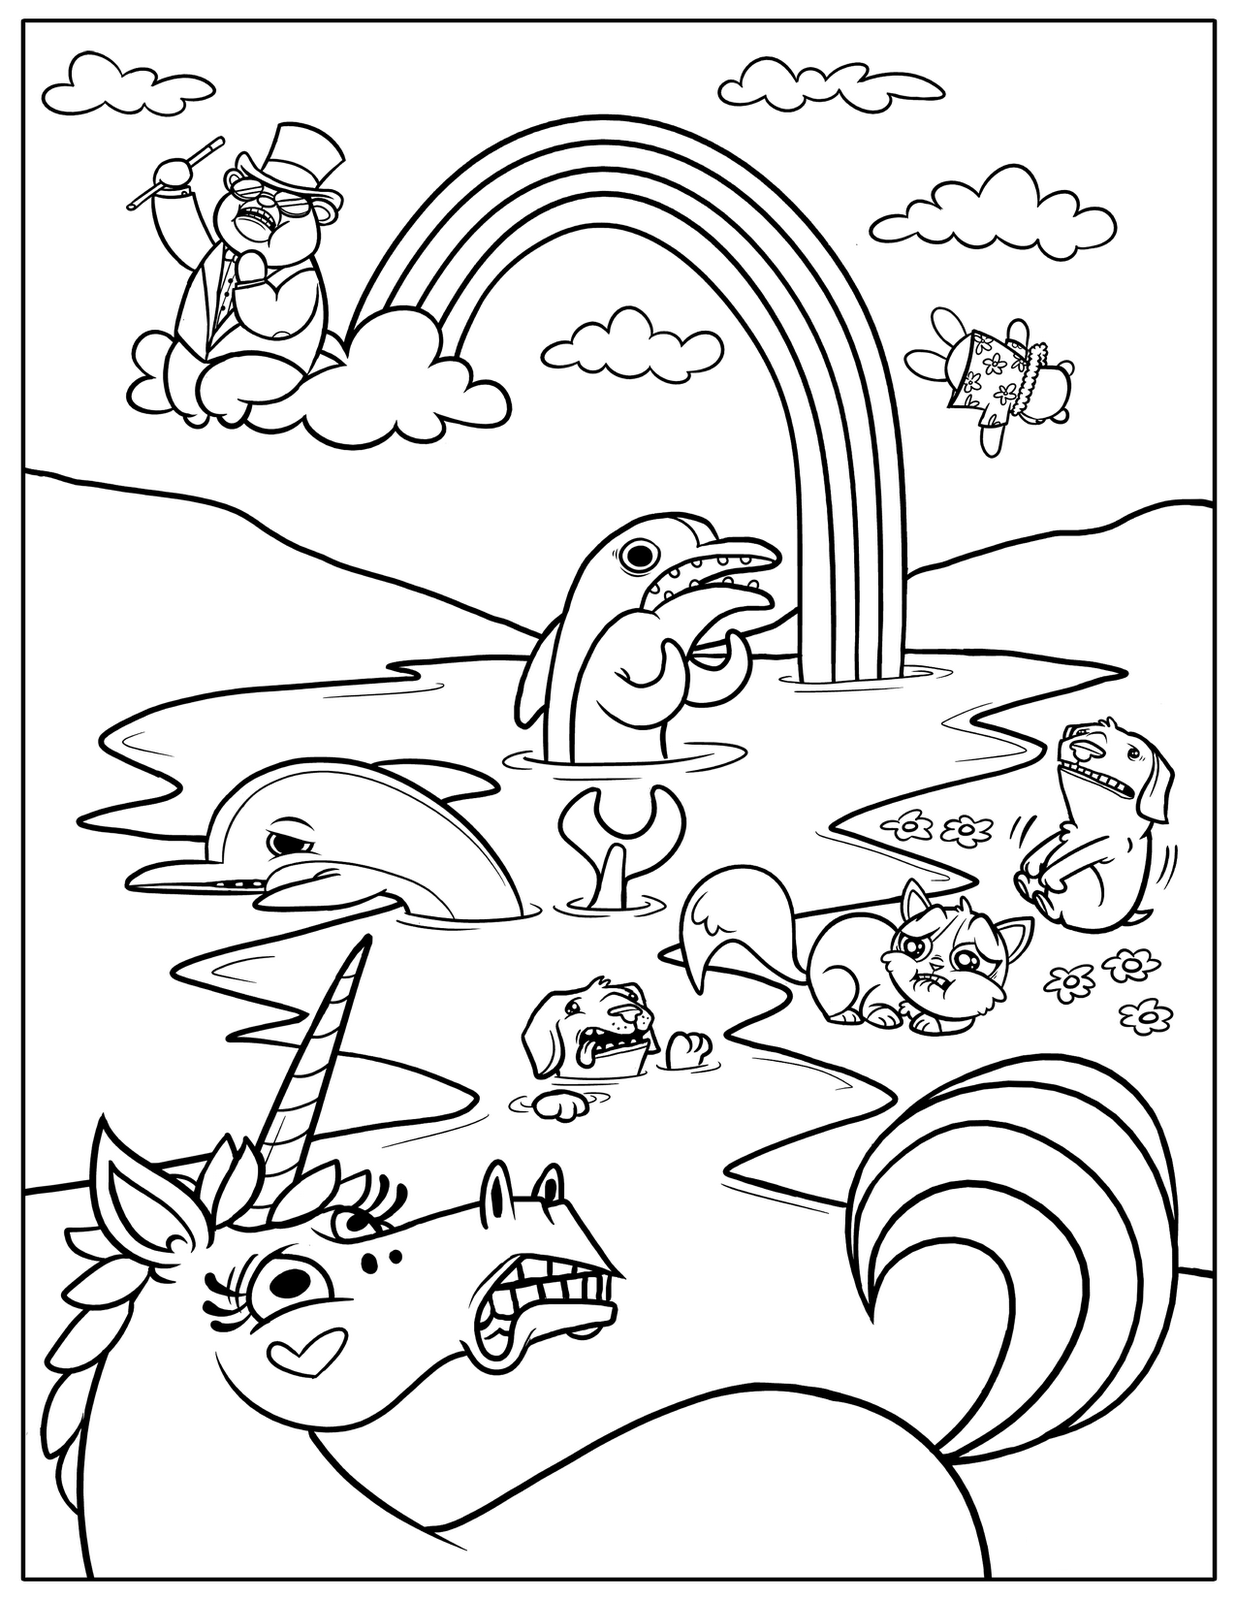 rainbow coloring pages kids printable - Printable Kids